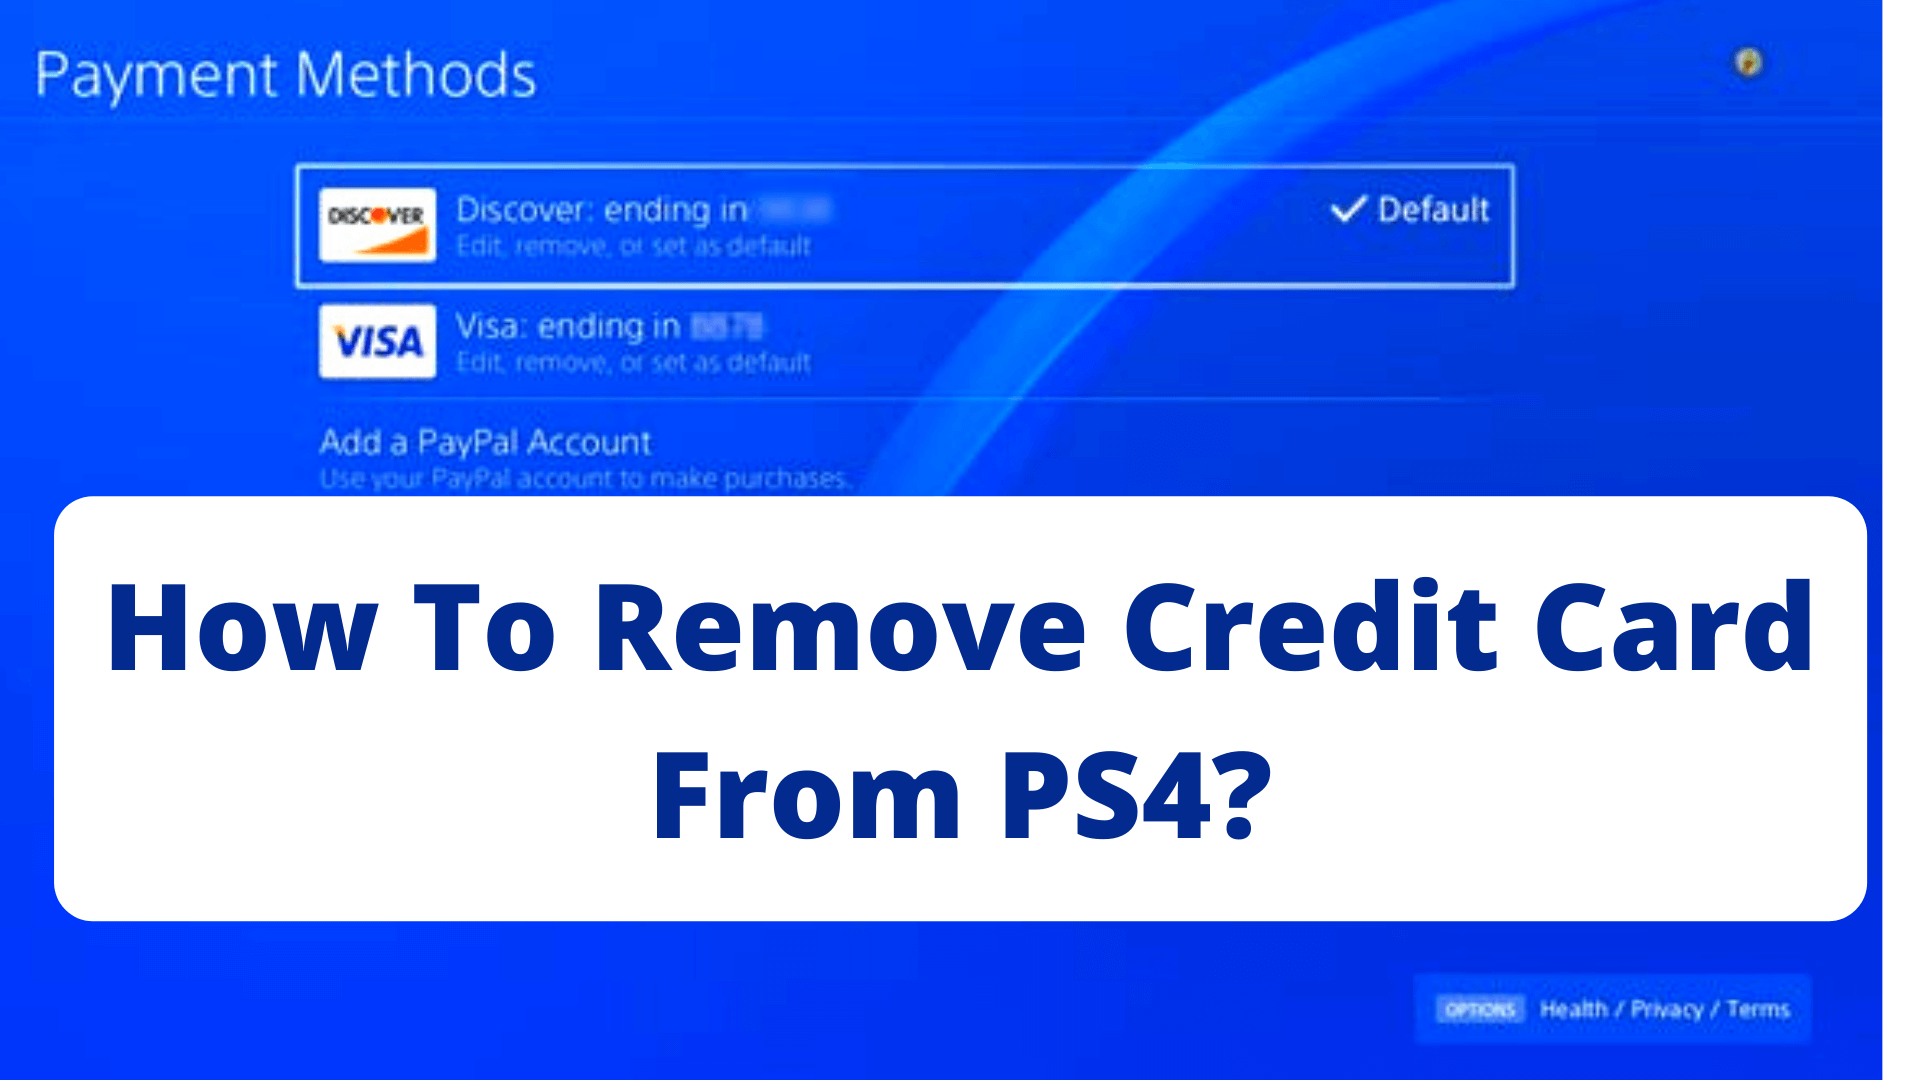 How To Remove Credit Card From PS4